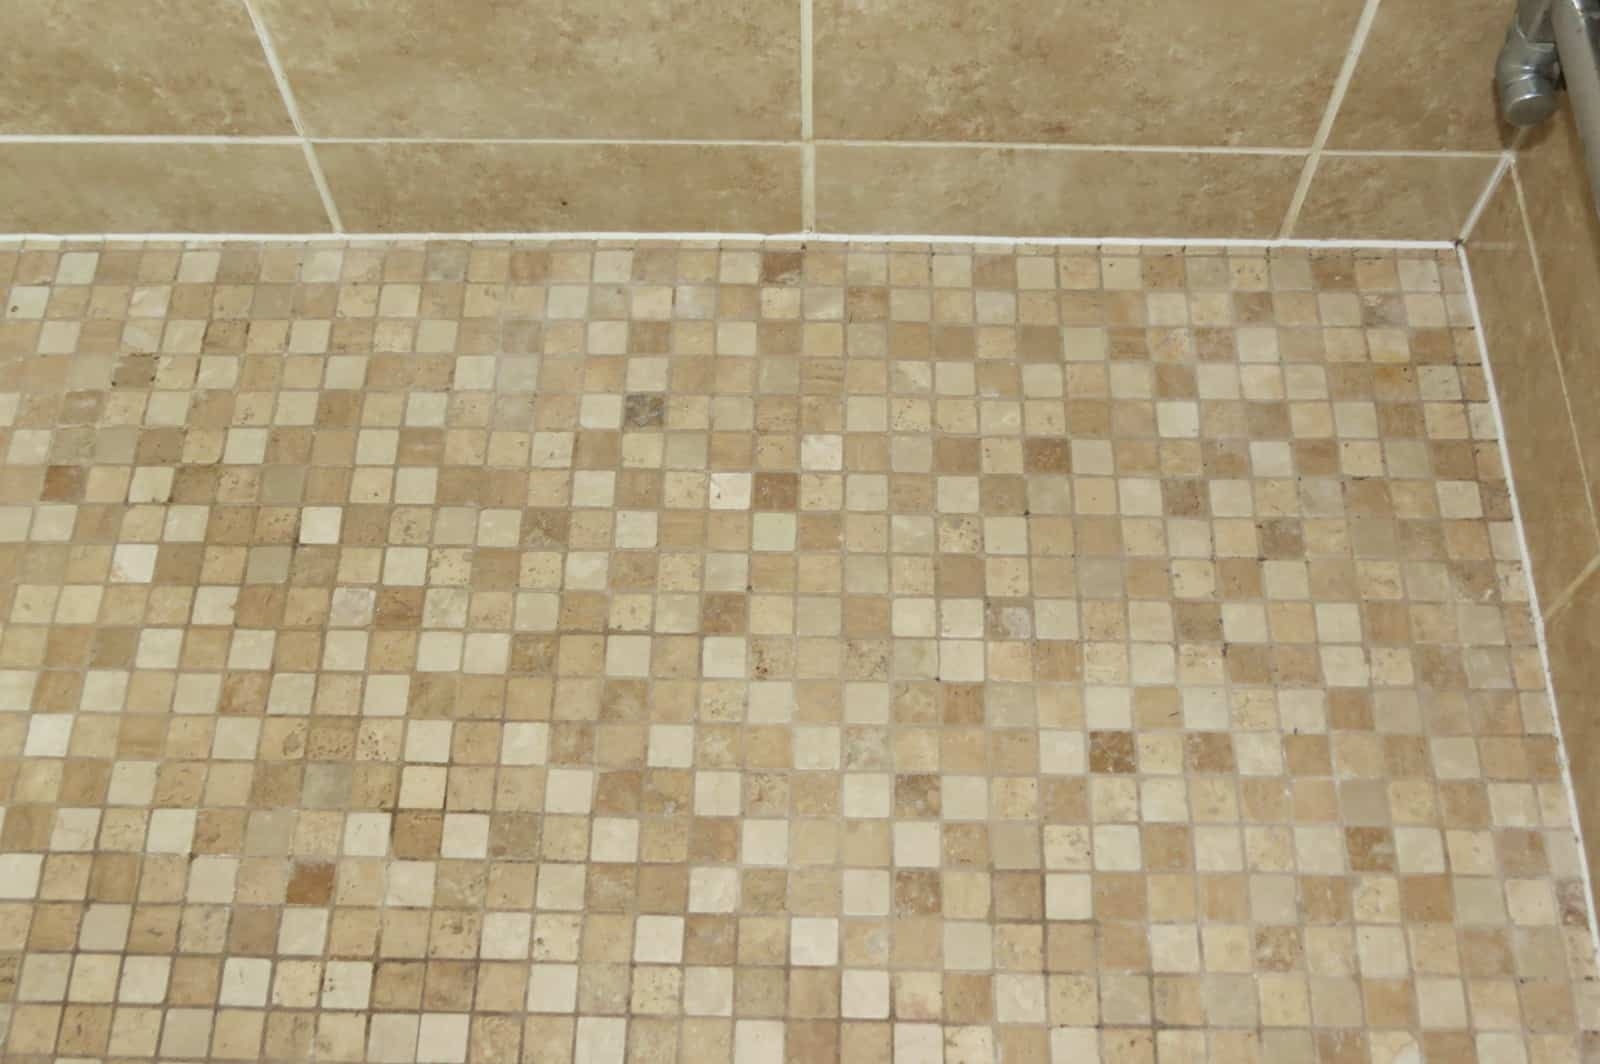 Mosaic Floor Tiles Image Contemporary Tile Design Ideas From